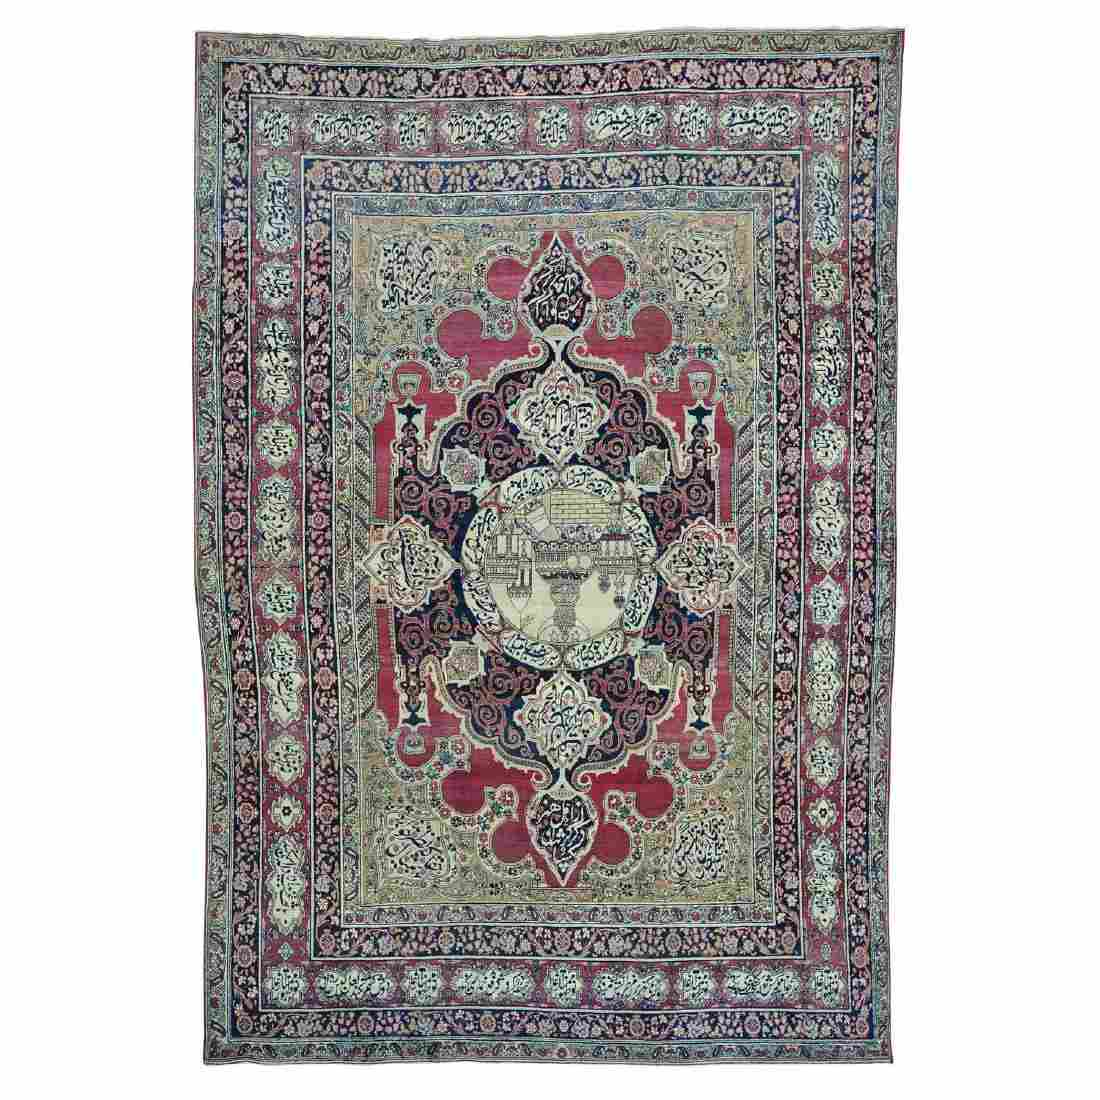 Antique Persian Kerman Sha Hand Knotted Rug 7.4x10.8